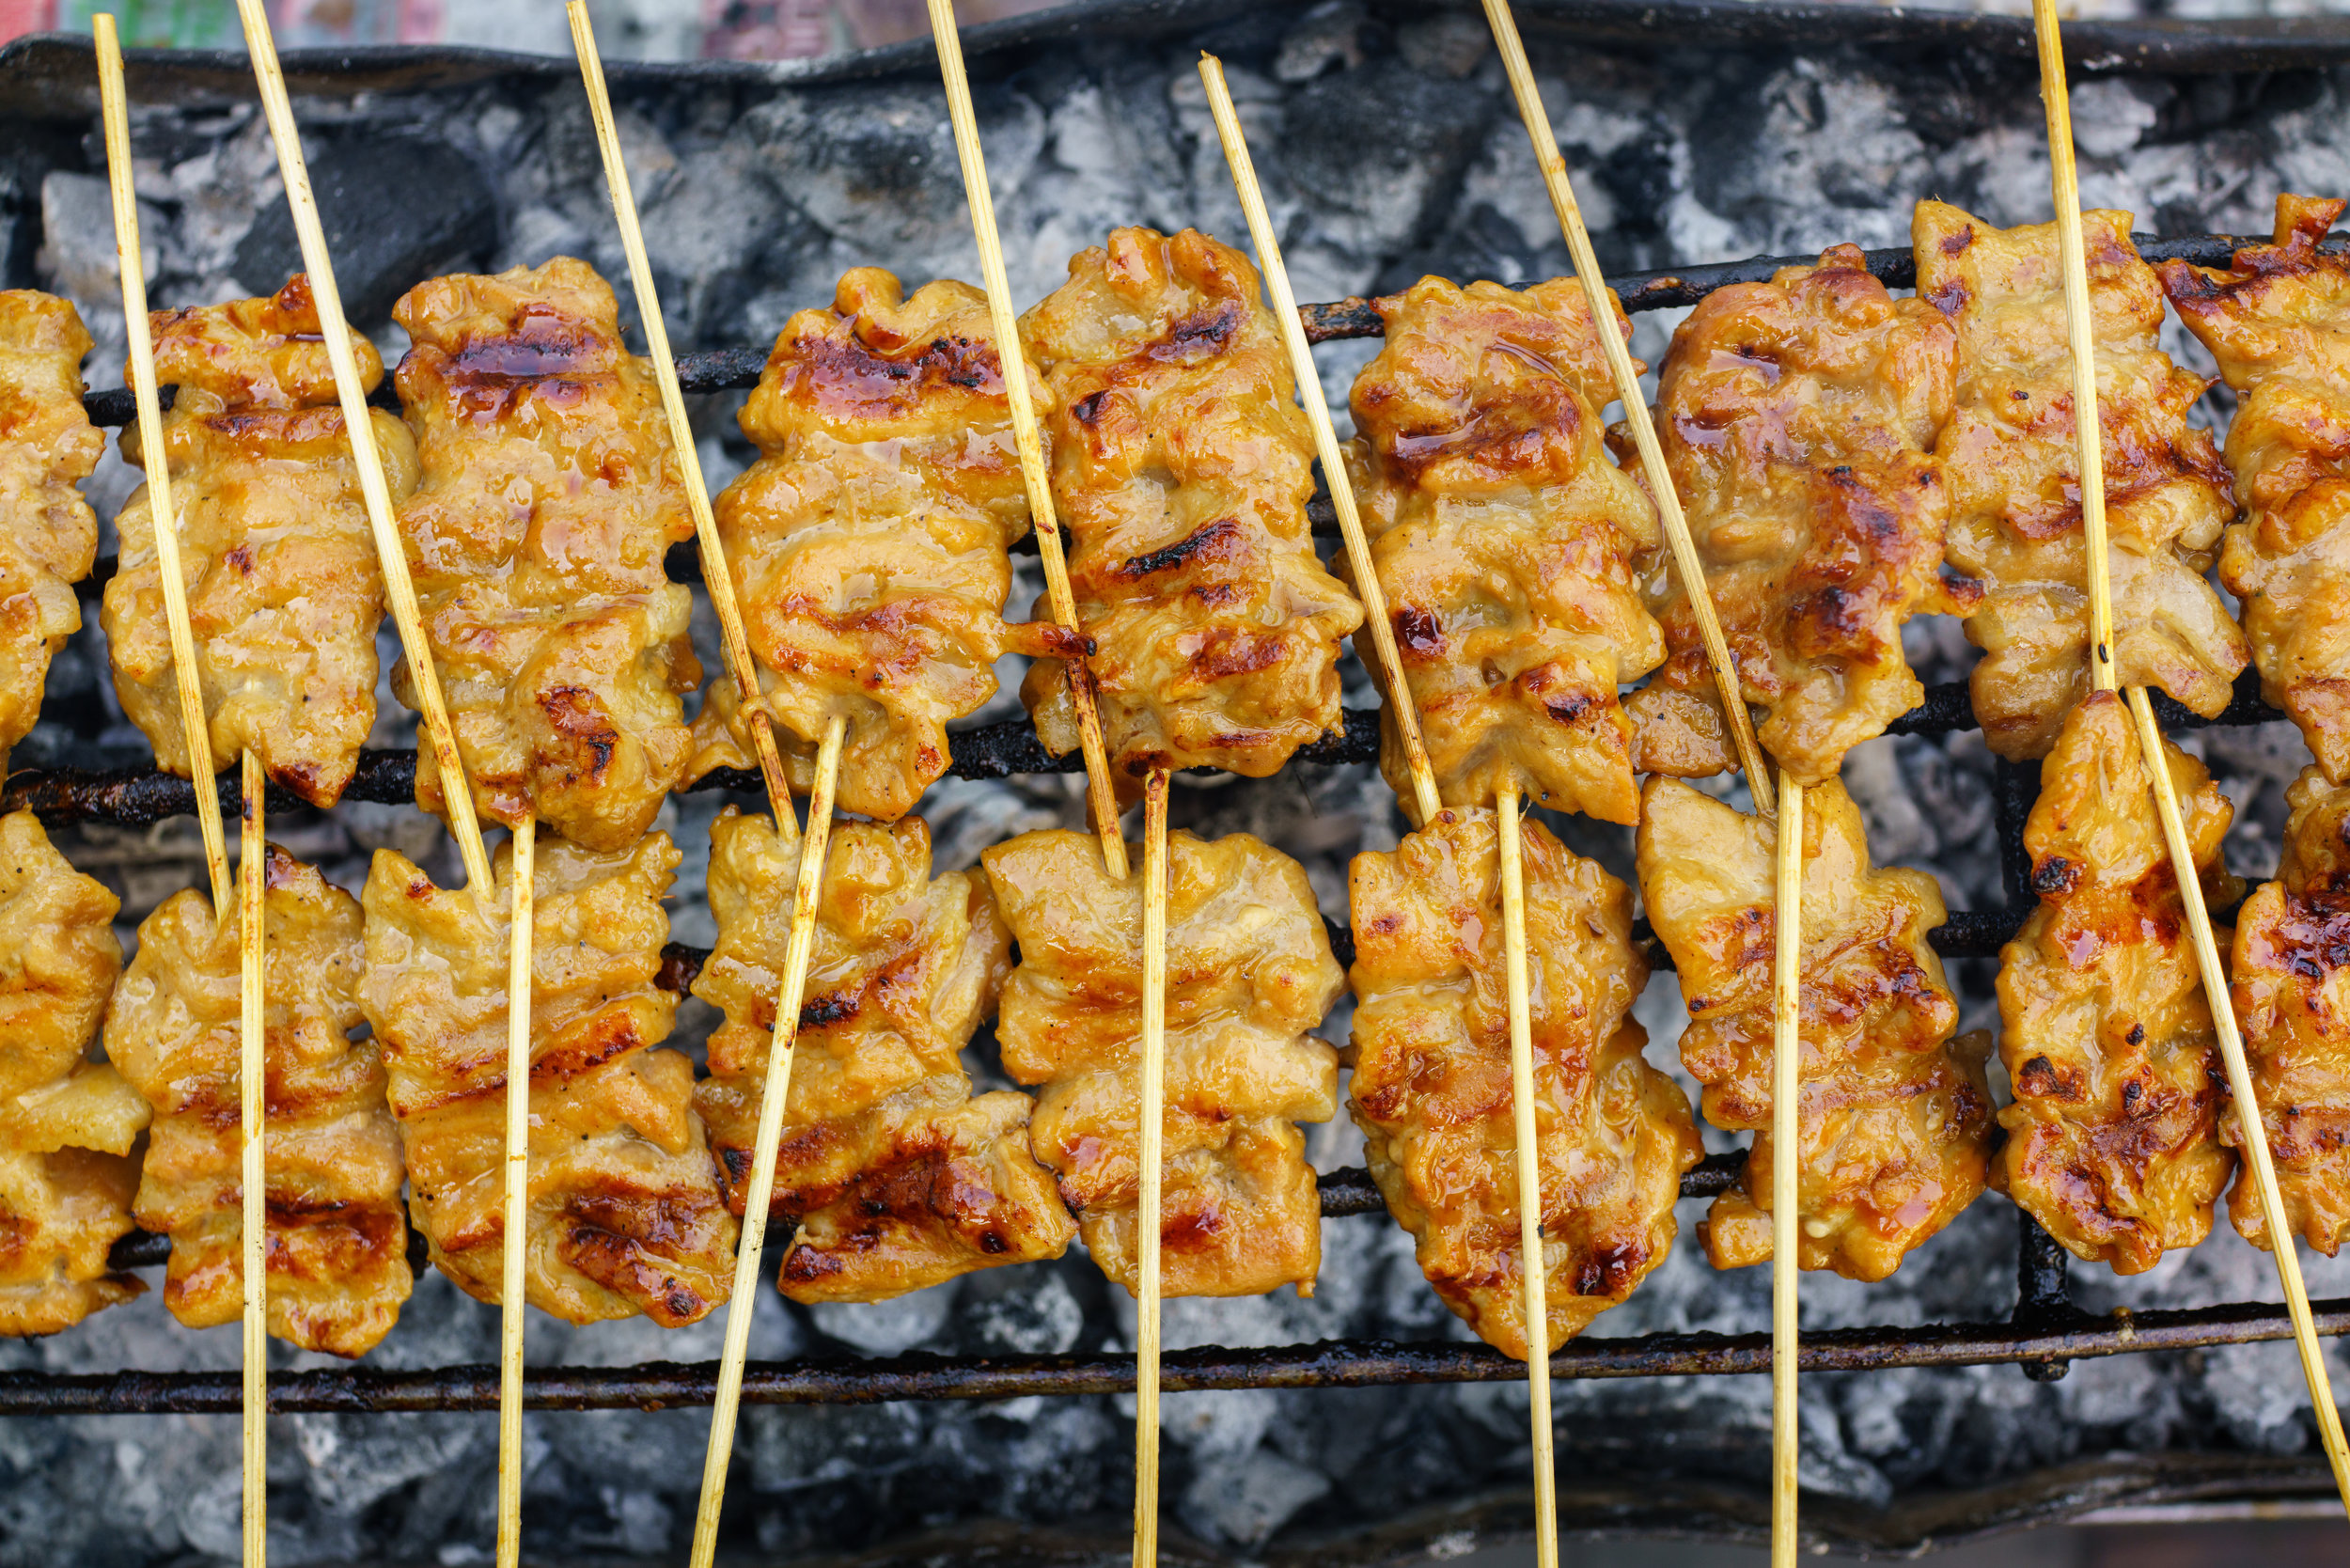 Pork skewers and sticky rice make a great snack